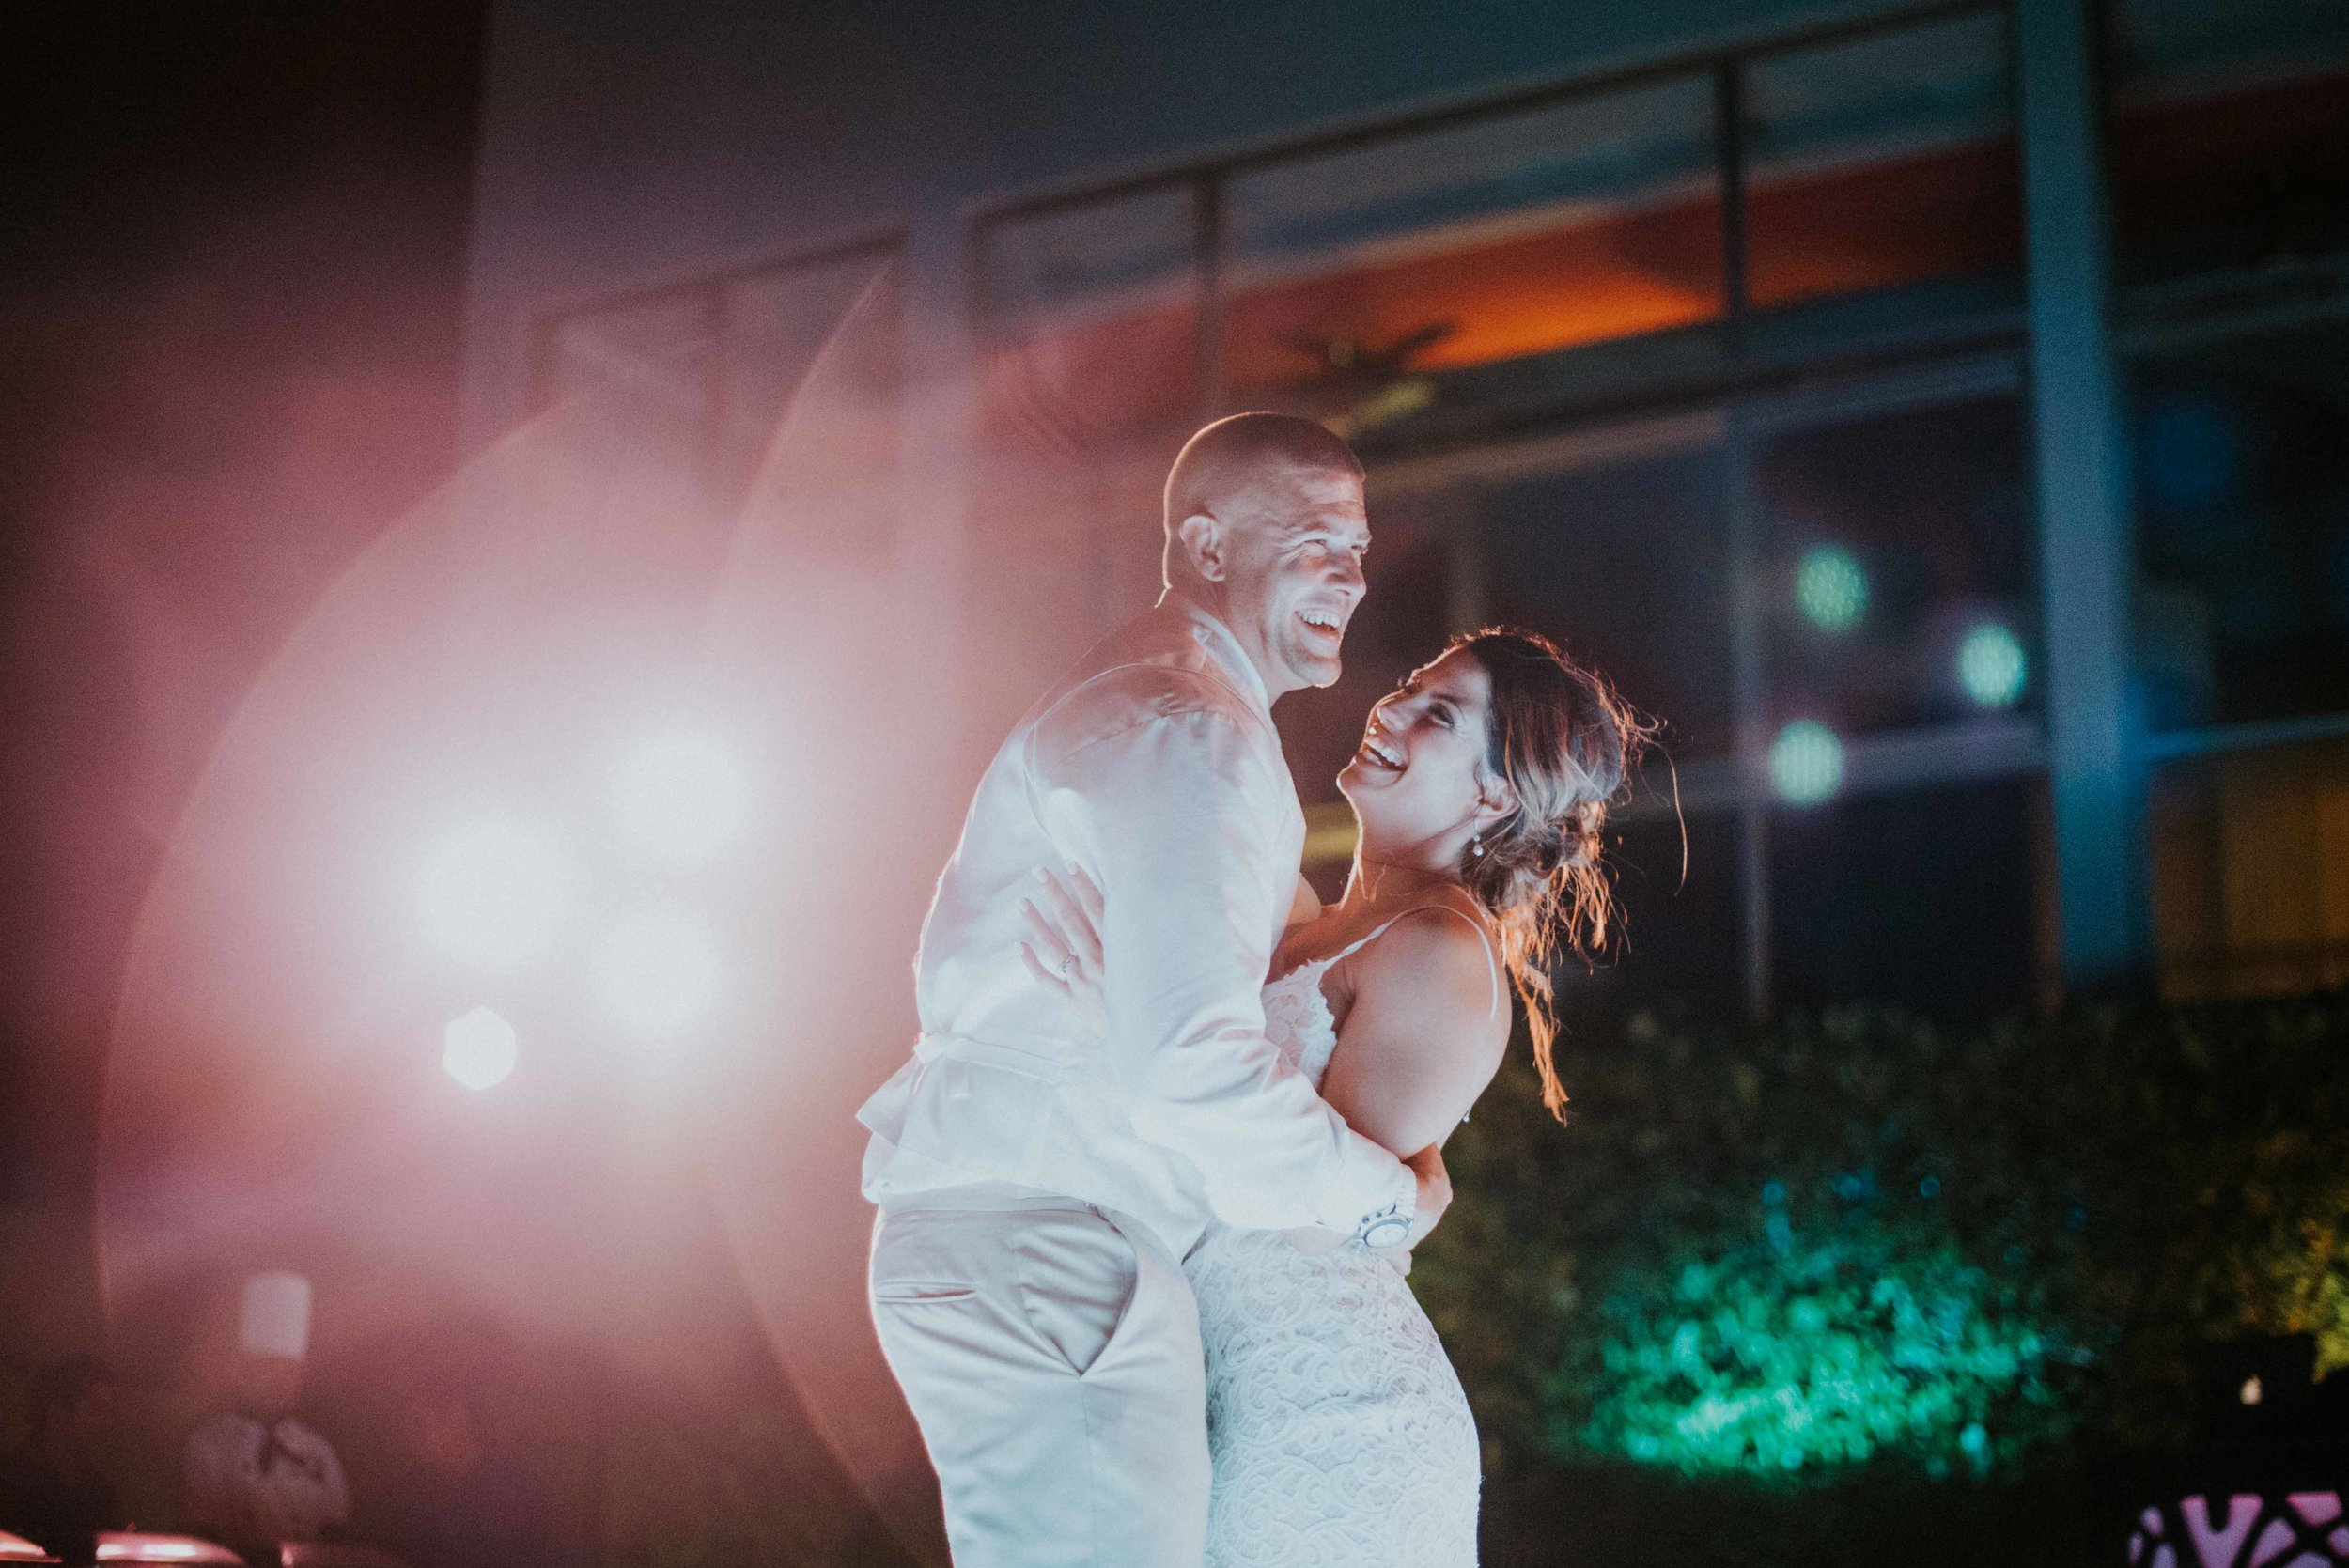 Beach-Wedding-Photography-Cancun-Elopement-Destination-Elopement-Photography-Destination-Beach-Wedding-+Costa-Rica-Wedding-Photography-Beach-Wedding-Photos-teresawoodhull-Cancun-Elopement-Beach-Wedding-+Sunset-Beach-Wedding-Fotografia-de-bodas-Nicoya-Peninsula-Elopement-Photographer-Santa-Teresa-Elopement-Photographer-Adventure-elopement-photographer-Santa-Teresa-Wedding-Photographer-Adventure-Wedding-Boda-playa-santa-teresa-Adventure-Wedding-Photography-Adventure-Wedding-Photographer-Beach-Elopement-Beach-Elopement-Photos-maddie-mae-Beach-Elopement-Photographer-Destination-Elopement-Photographer-Sunset-Beach-Elopement-Mexico-wedding-photographer-cabo-wedding-photographer-mexico-wedding-mexico-destination-wedding-cancun-destination-wedding-cancun-elopement-photographer-playa-del-carmen-wedding-playa-del-carmen-destination-wedding-photographer-playa-del-carmen-wedding-photography-Nicoya-Peninsula-Wedding-Photography-Nicoya-Peninsula-Wedding-Photographer-Nicoya-Peninsula-Elopement-Photography-mexico-first-dance-beach-first-dance